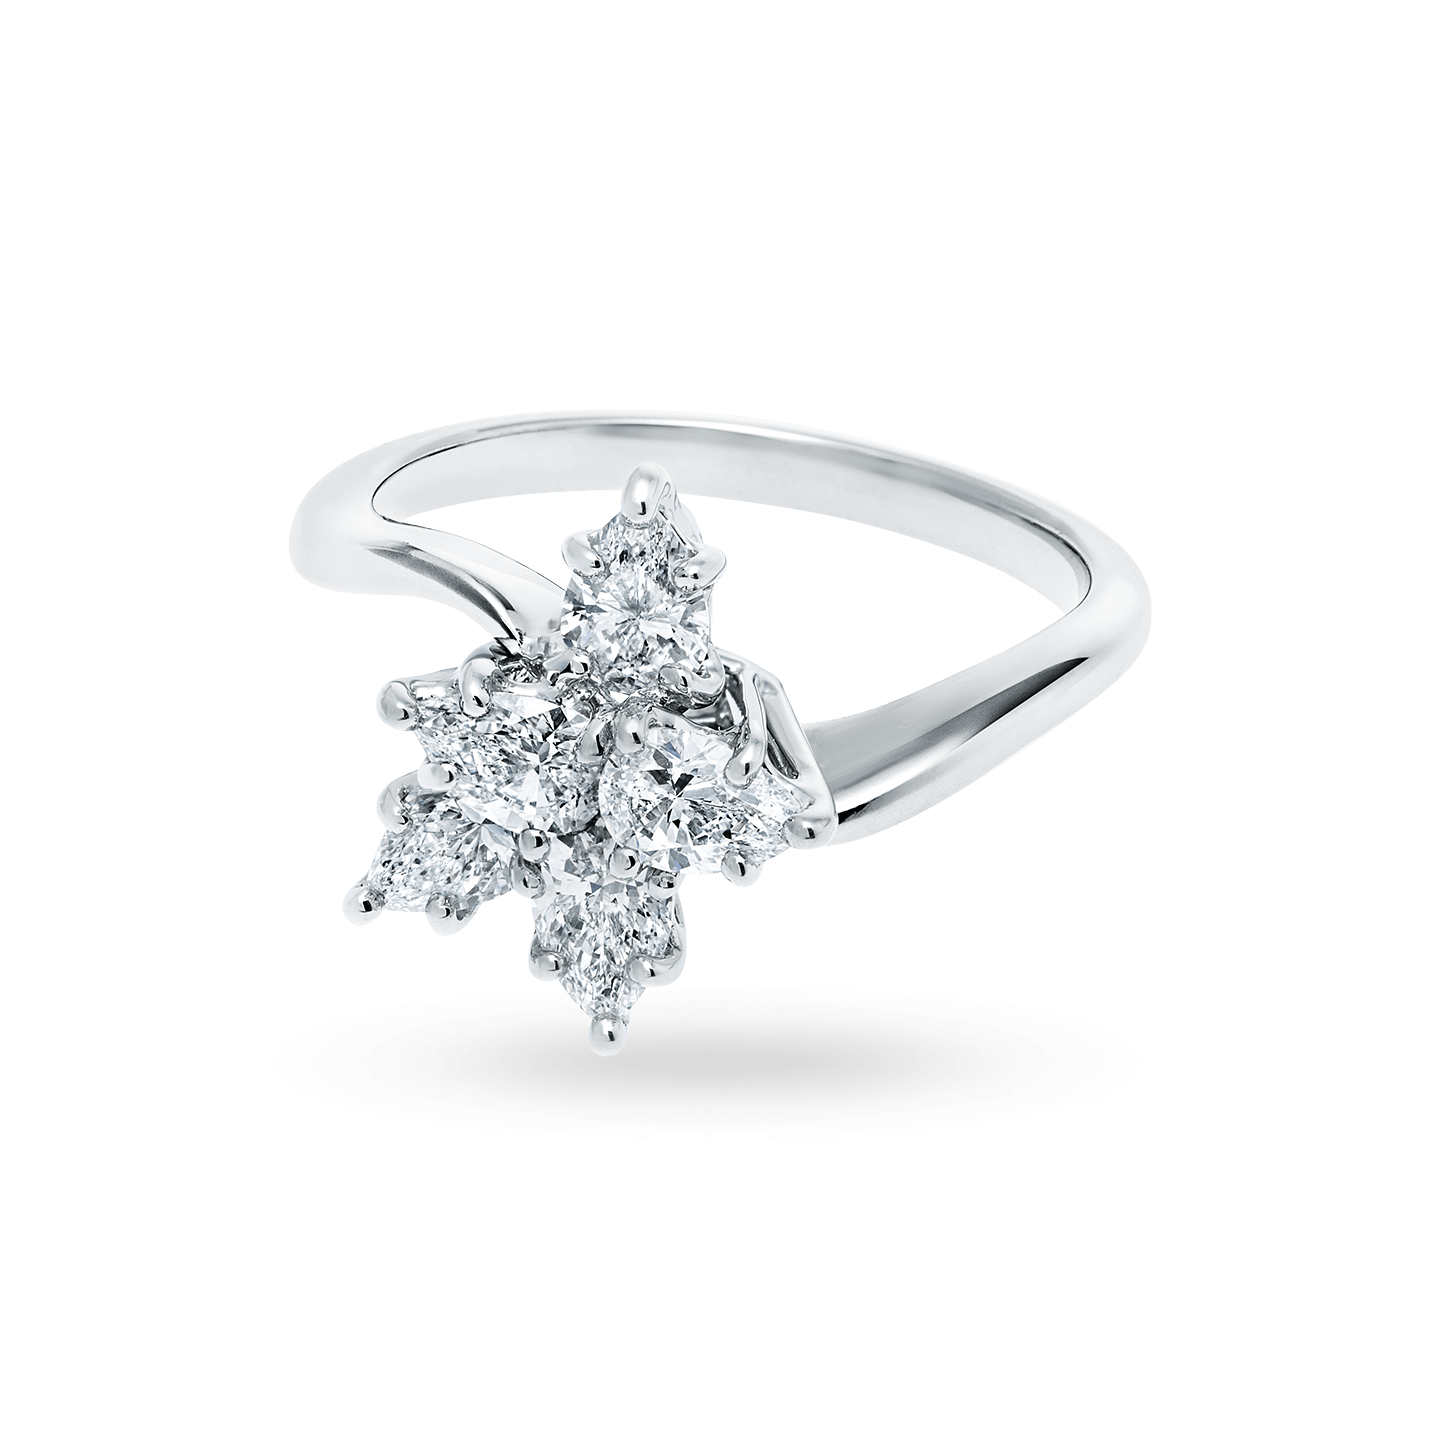 Winston Cluster Small Diamond Ring, Product Image 2